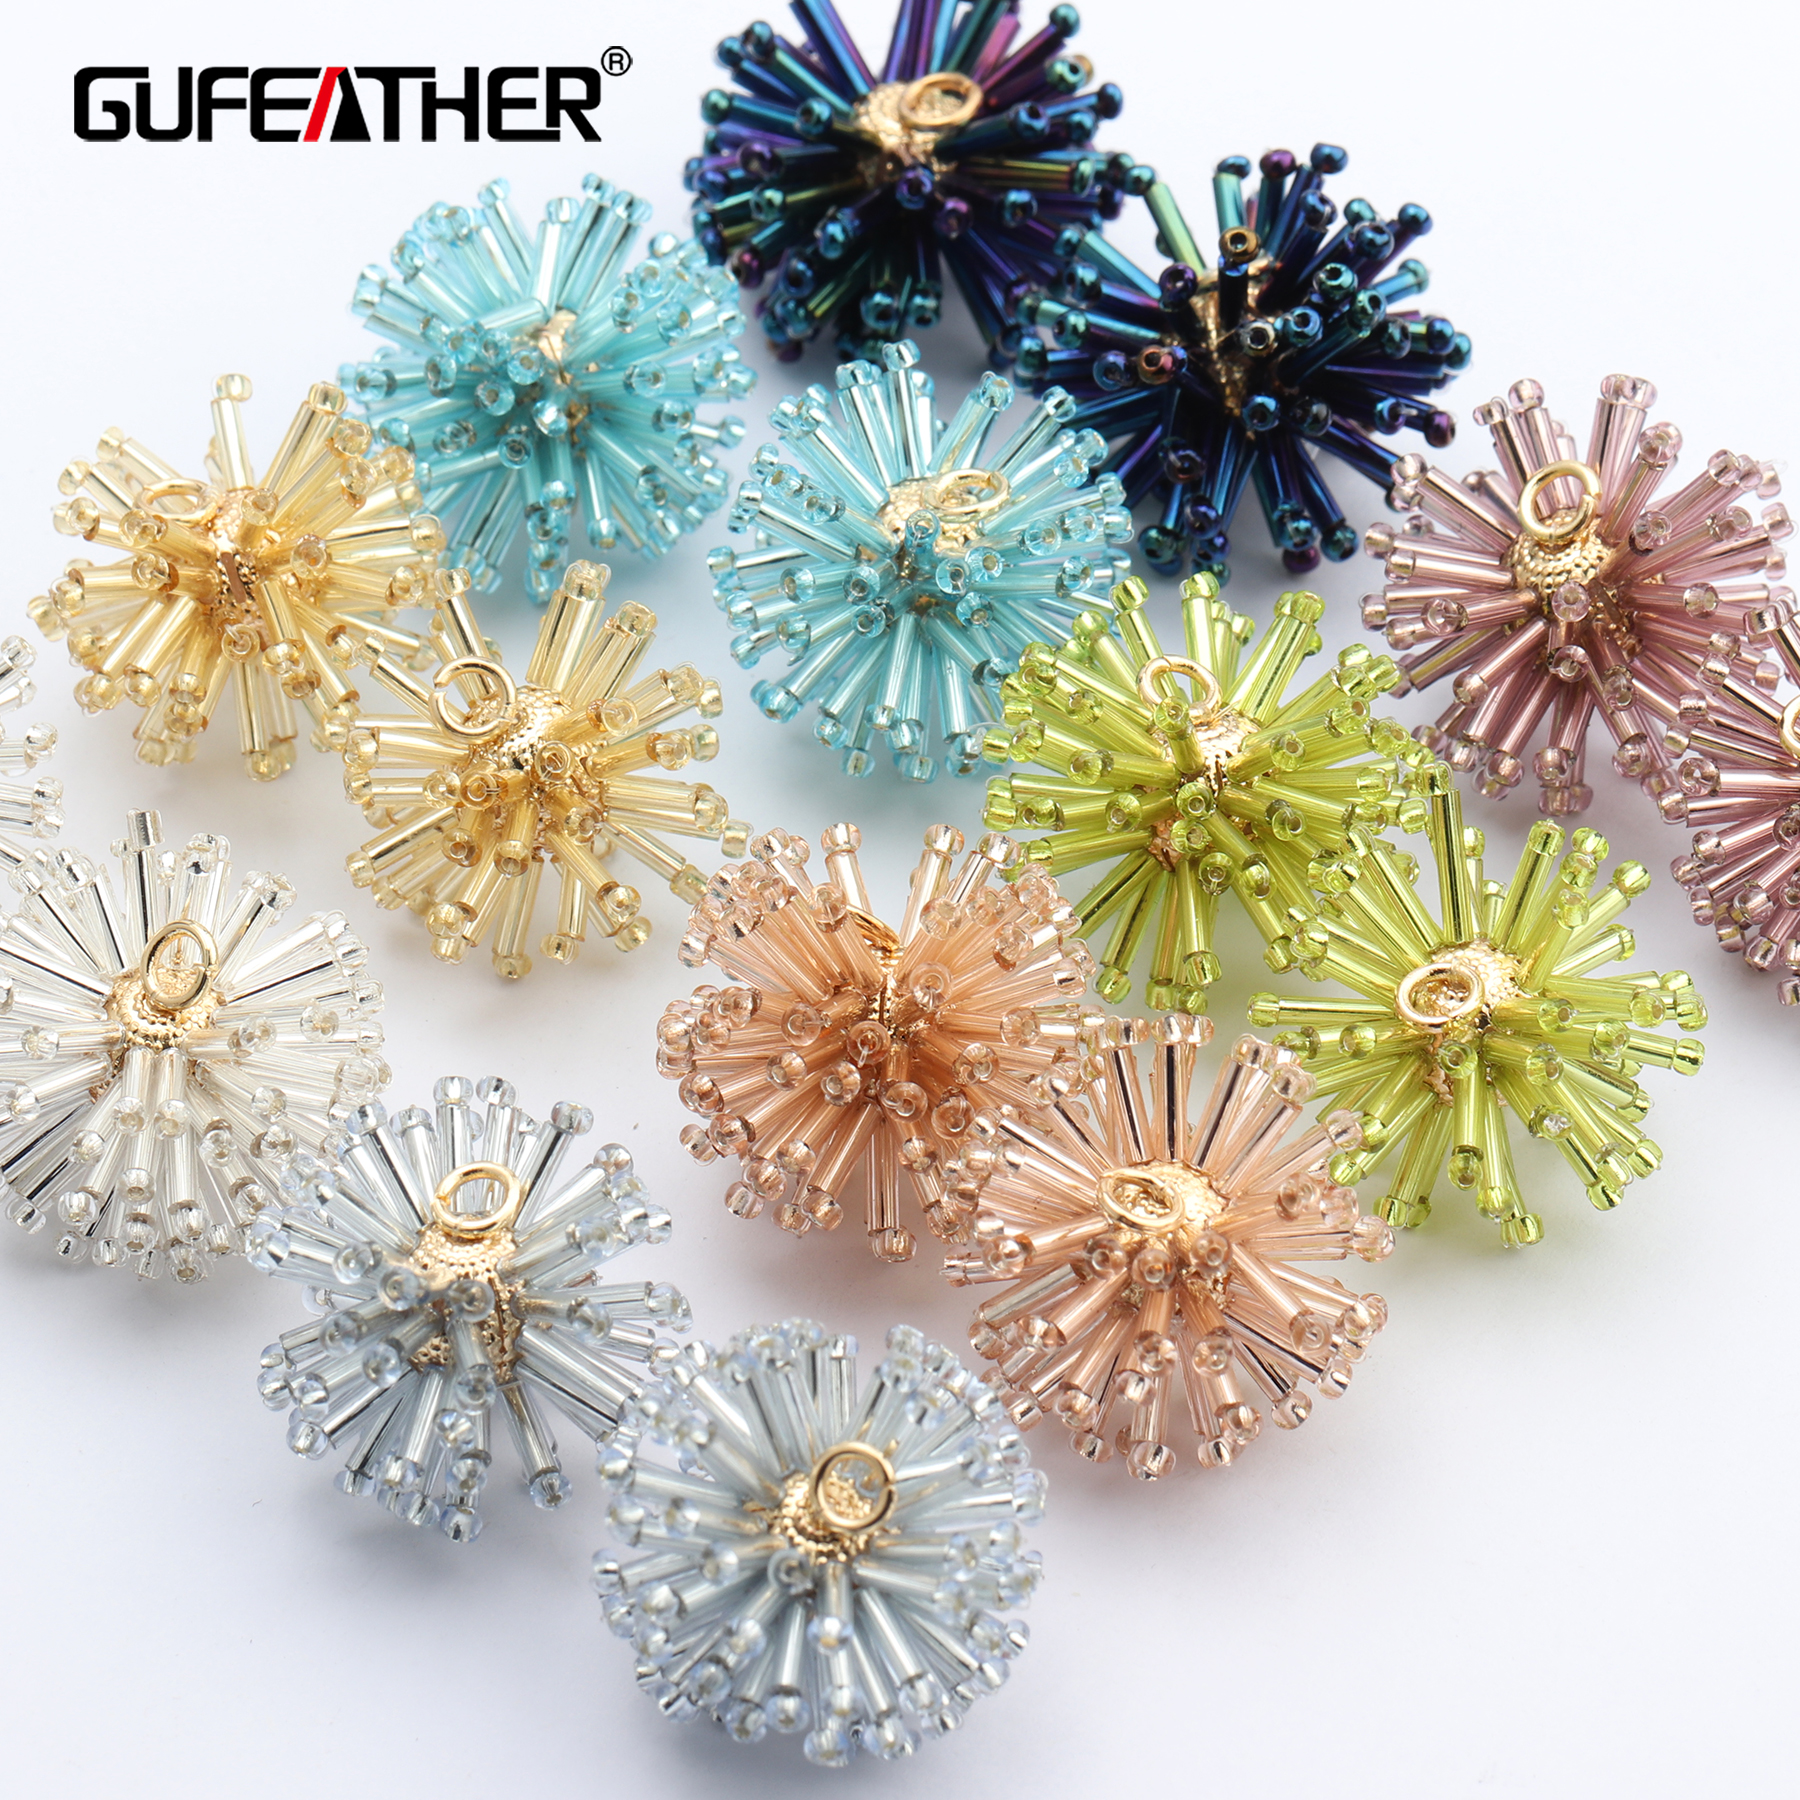 GUFEATHER M653,jewelry Accessories,diy Beads Accessories,copper Metal,jump Ring,hand Made,jewelry Making,diy Earrings,10pcs/lot